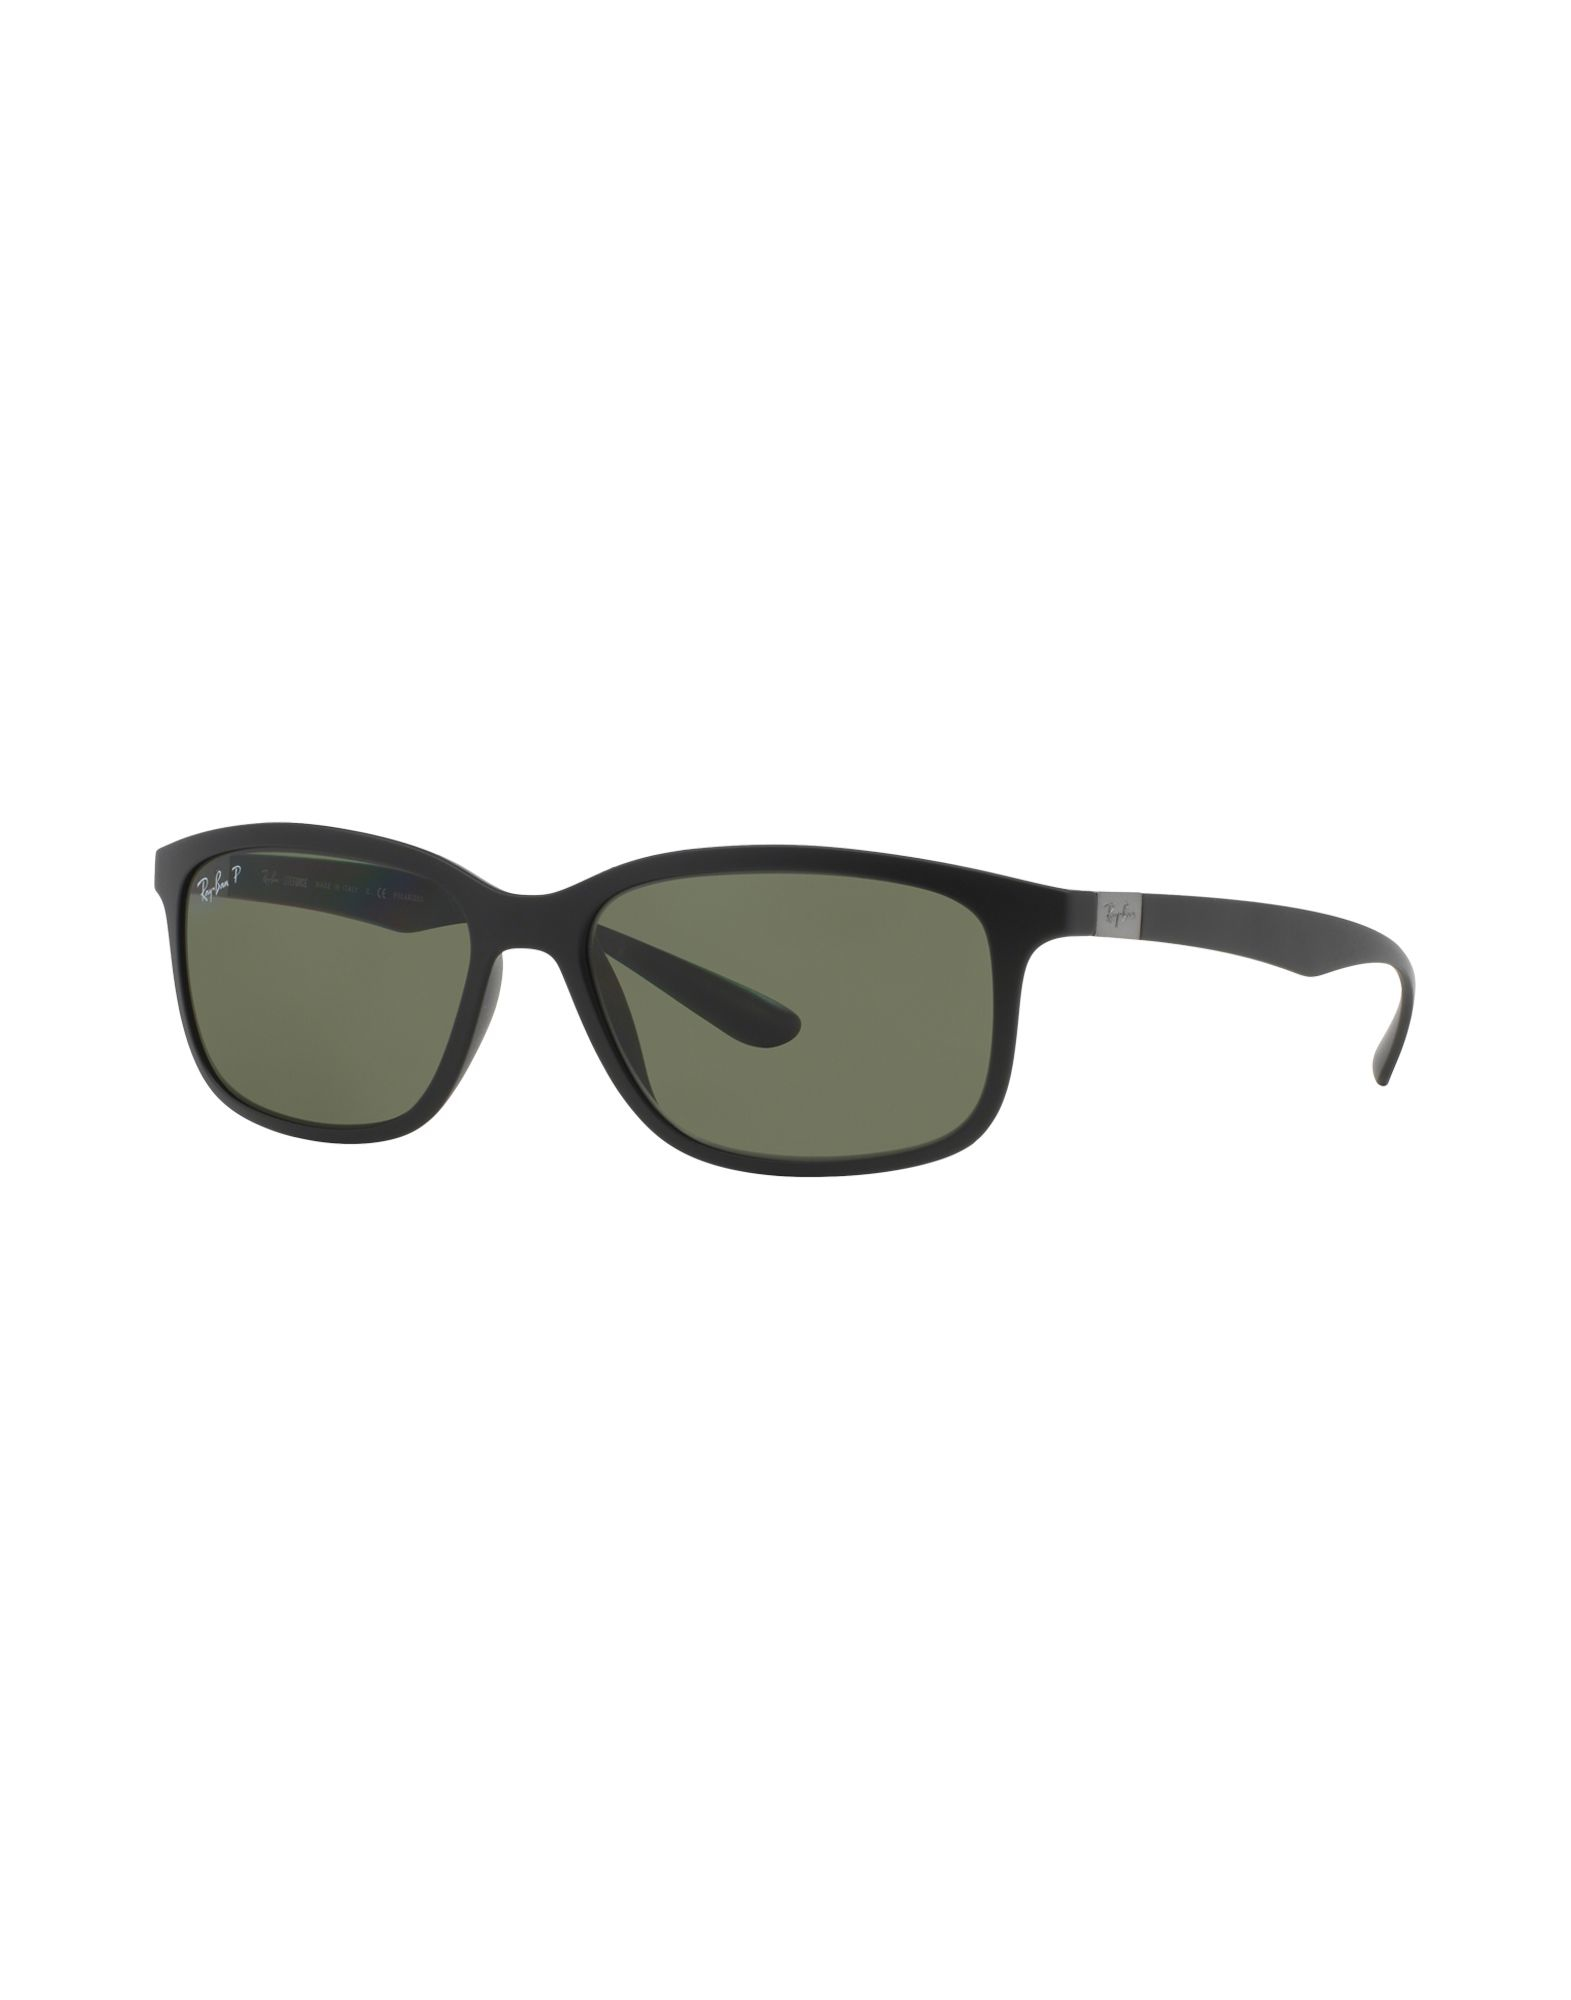 0fe5a693ad Cheap Sunglasses Ray Ban Rb3478 « Heritage Malta